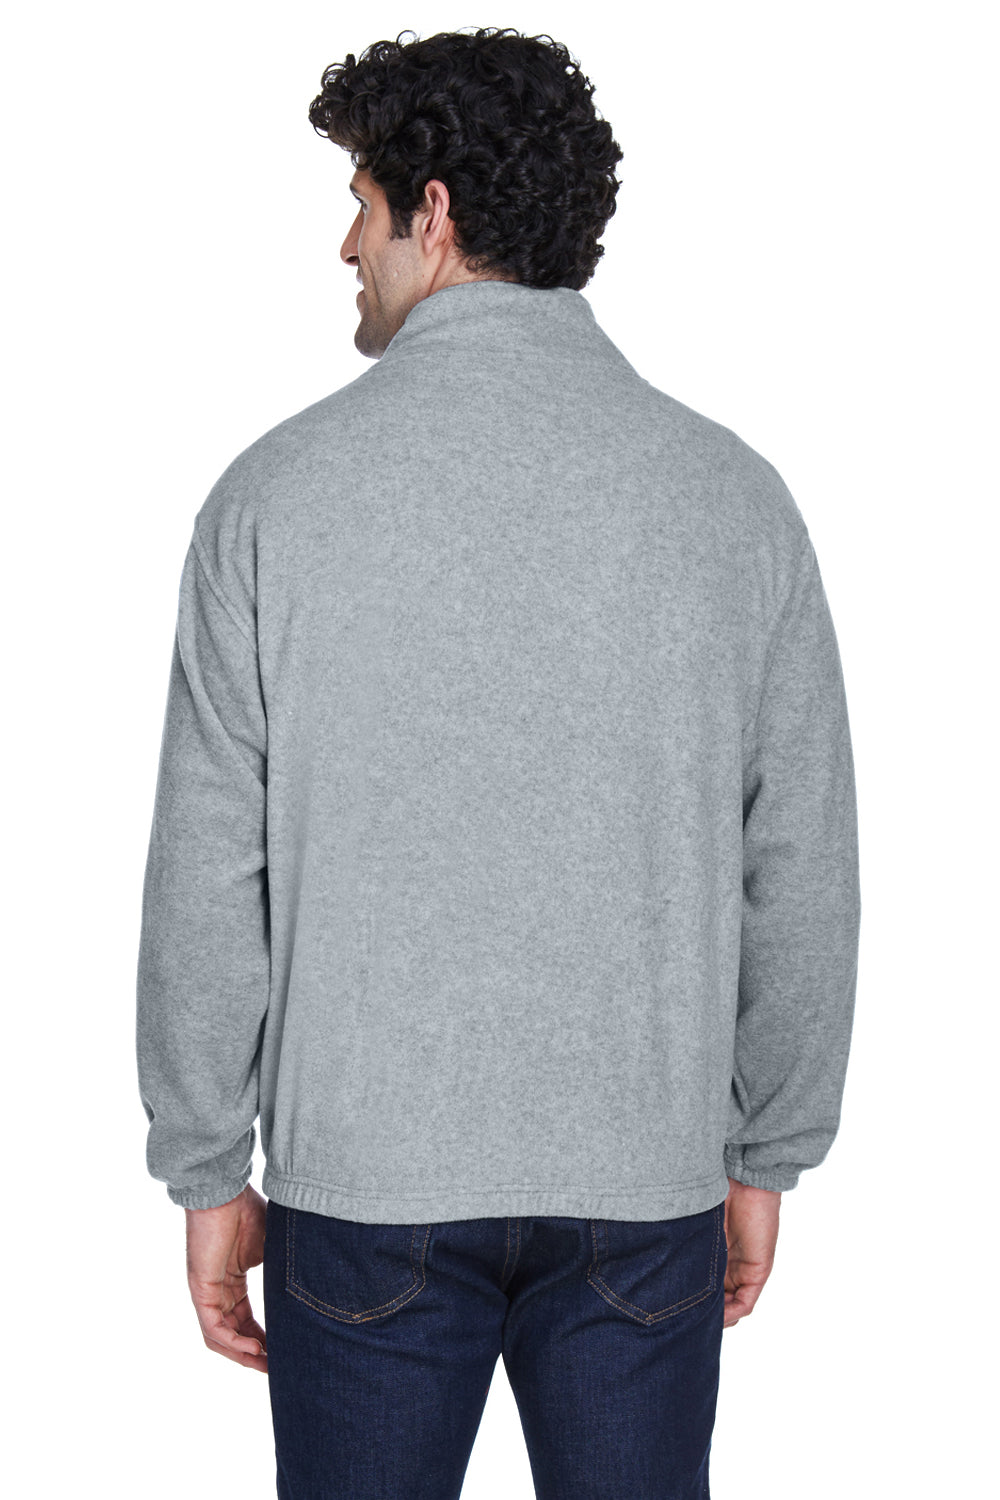 UltraClub 8485 Mens Iceberg Full Zip Fleece Jacket Heather Grey Back